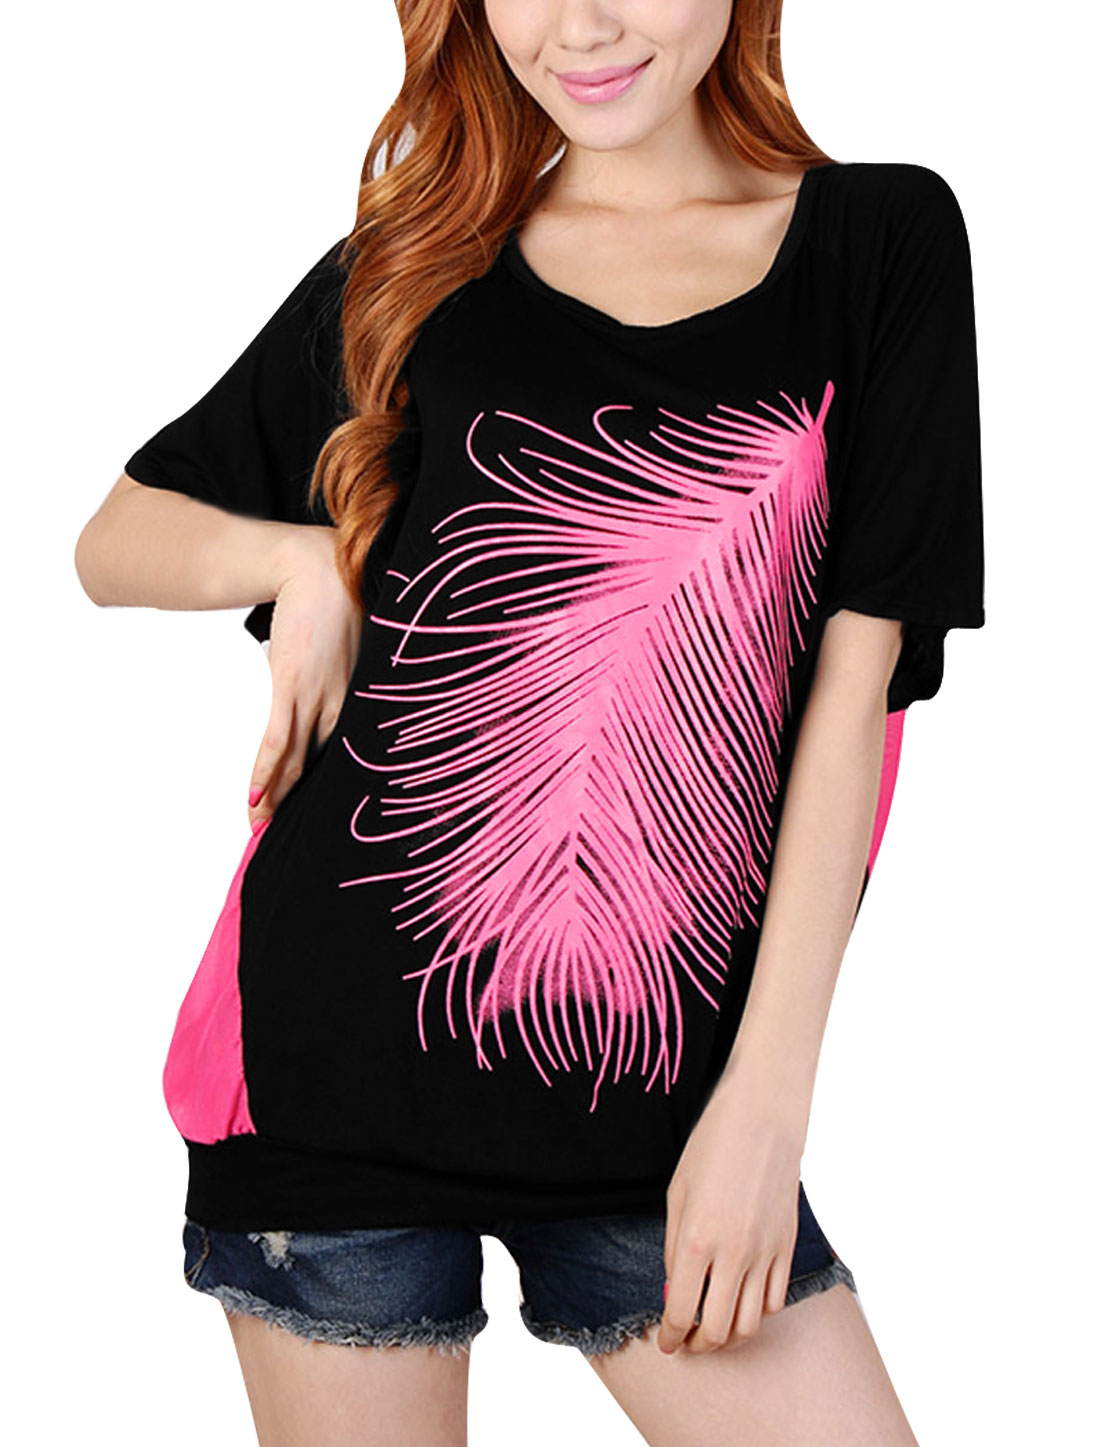 Woman NEW Scoop Neck Short Dolman Sleeve Feather Prints Fuchsia Black Top M